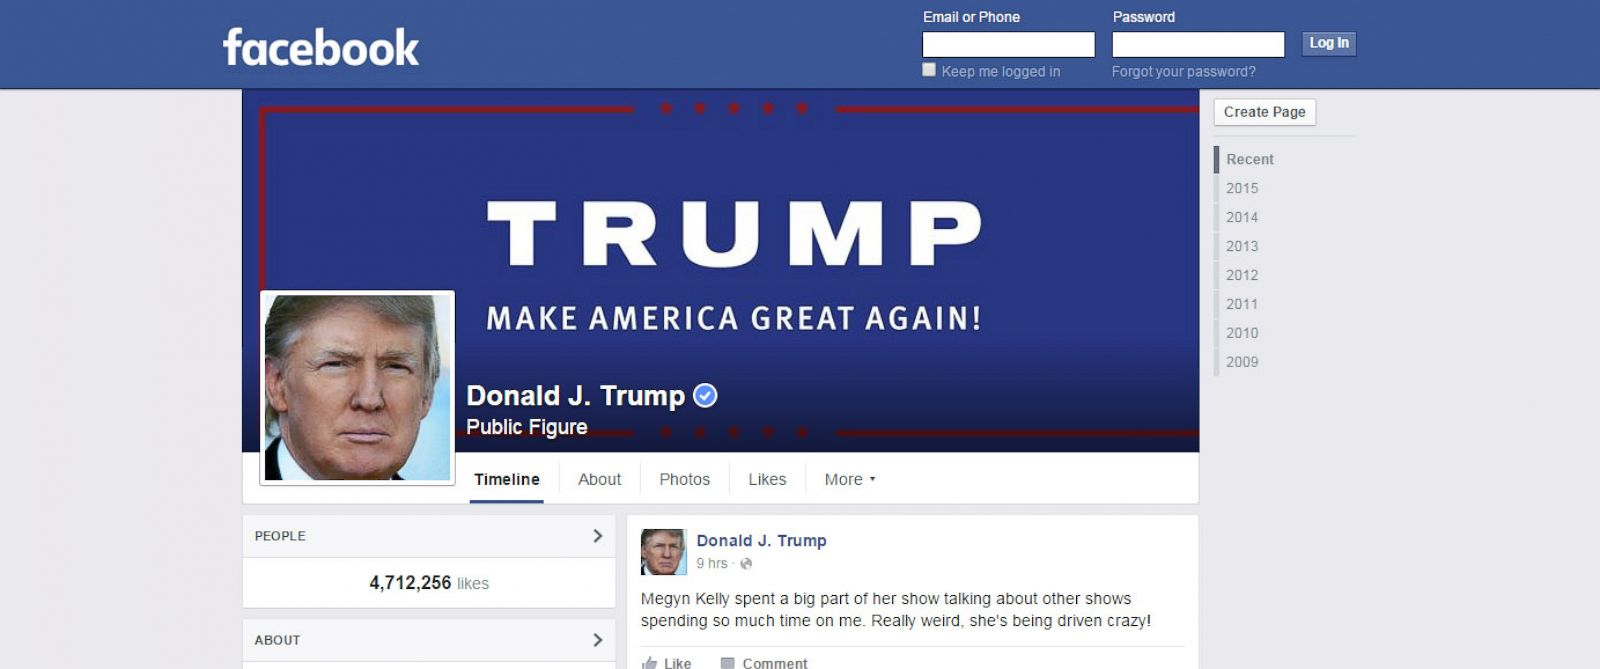 PHOTO: Donald Trumps official Facebook page is shown in a screen capture made on Dec. 10, 2015.